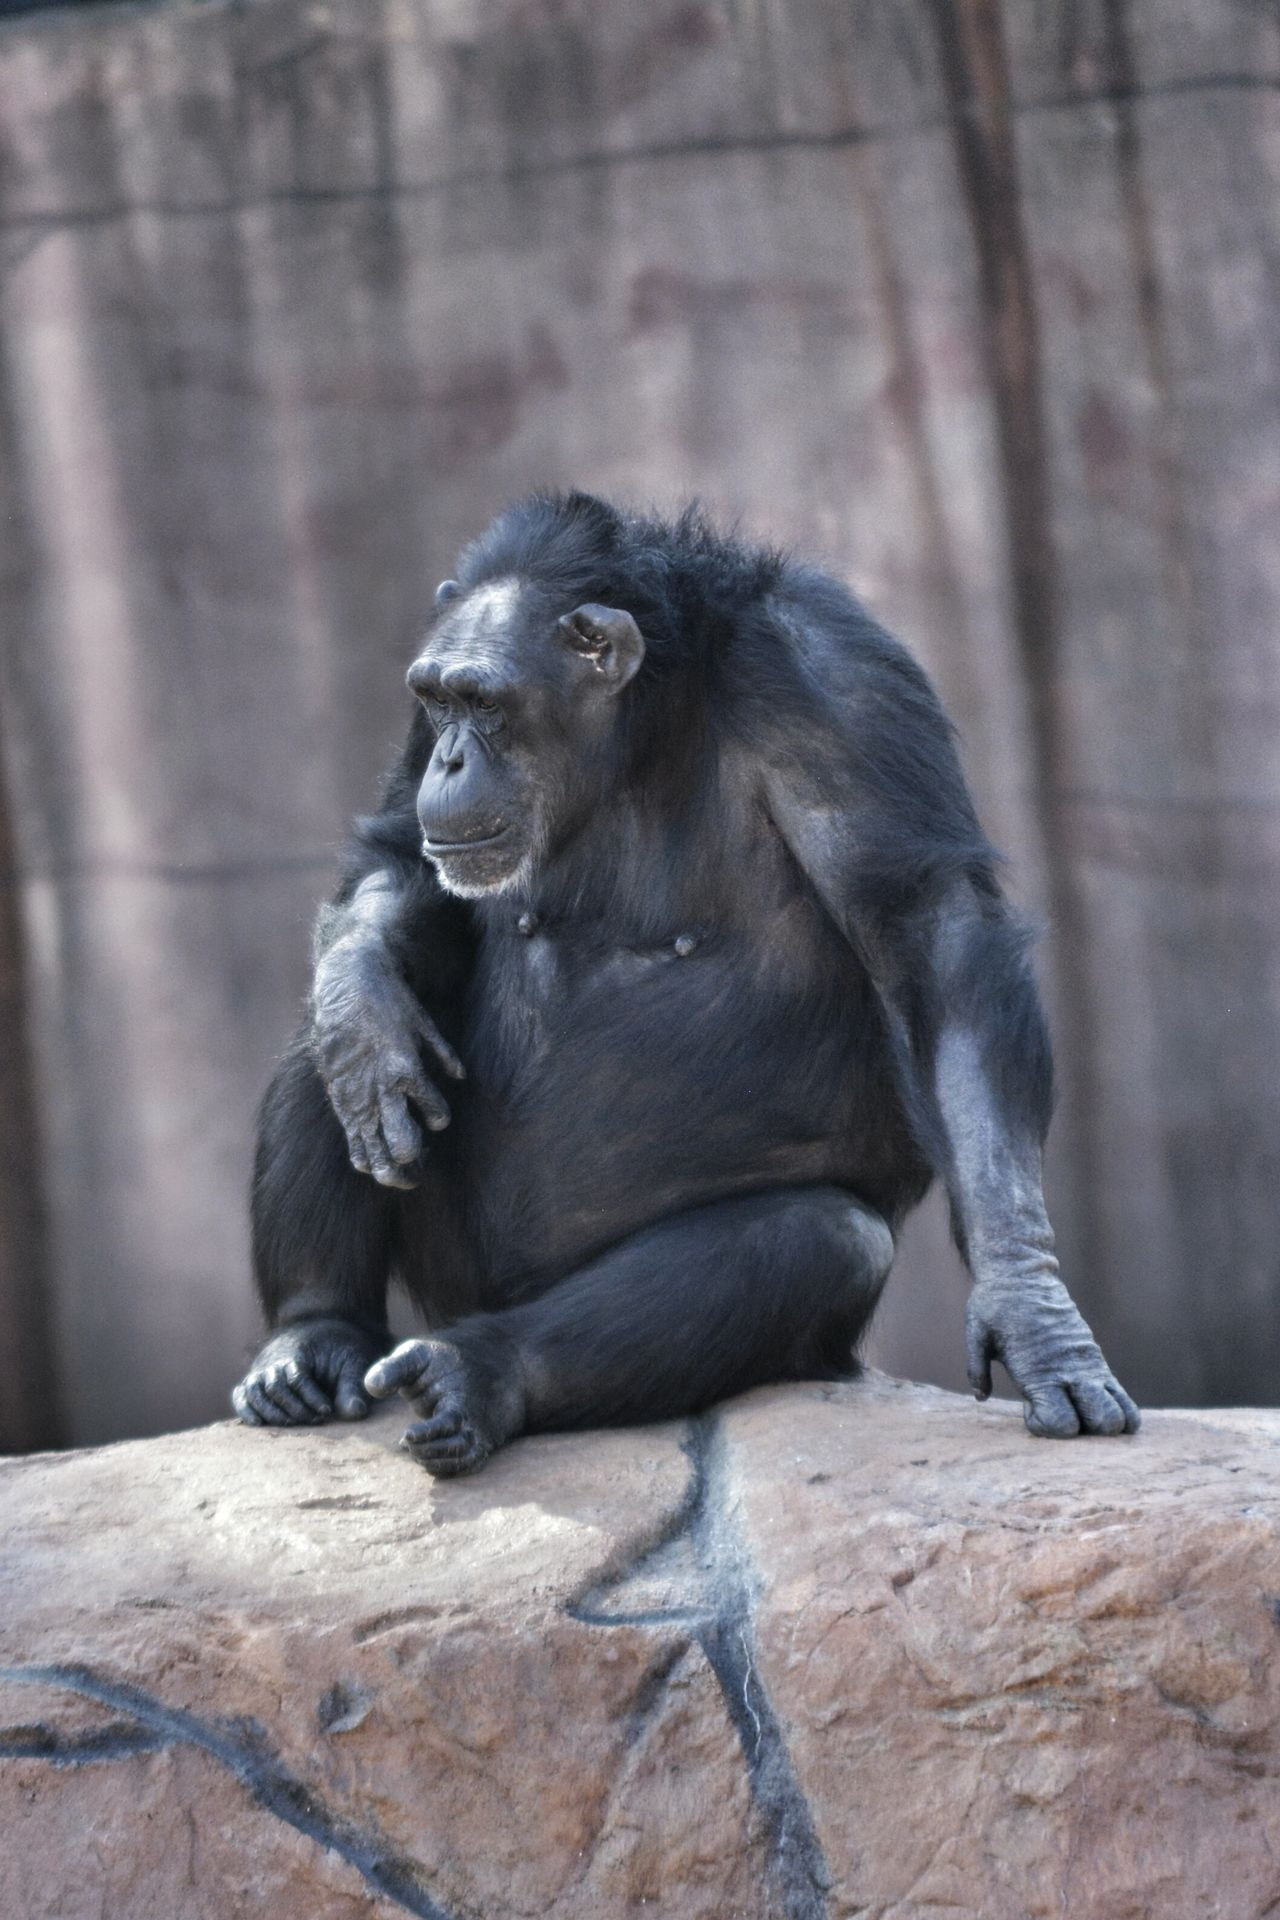 Hanging Out Taking Photos Cheese! Hi! Little Rock Zoo Challenge Yourself Time With My Daughter Little Rock, Arkansas Color Photography Chimpanzee Sitting Pretty